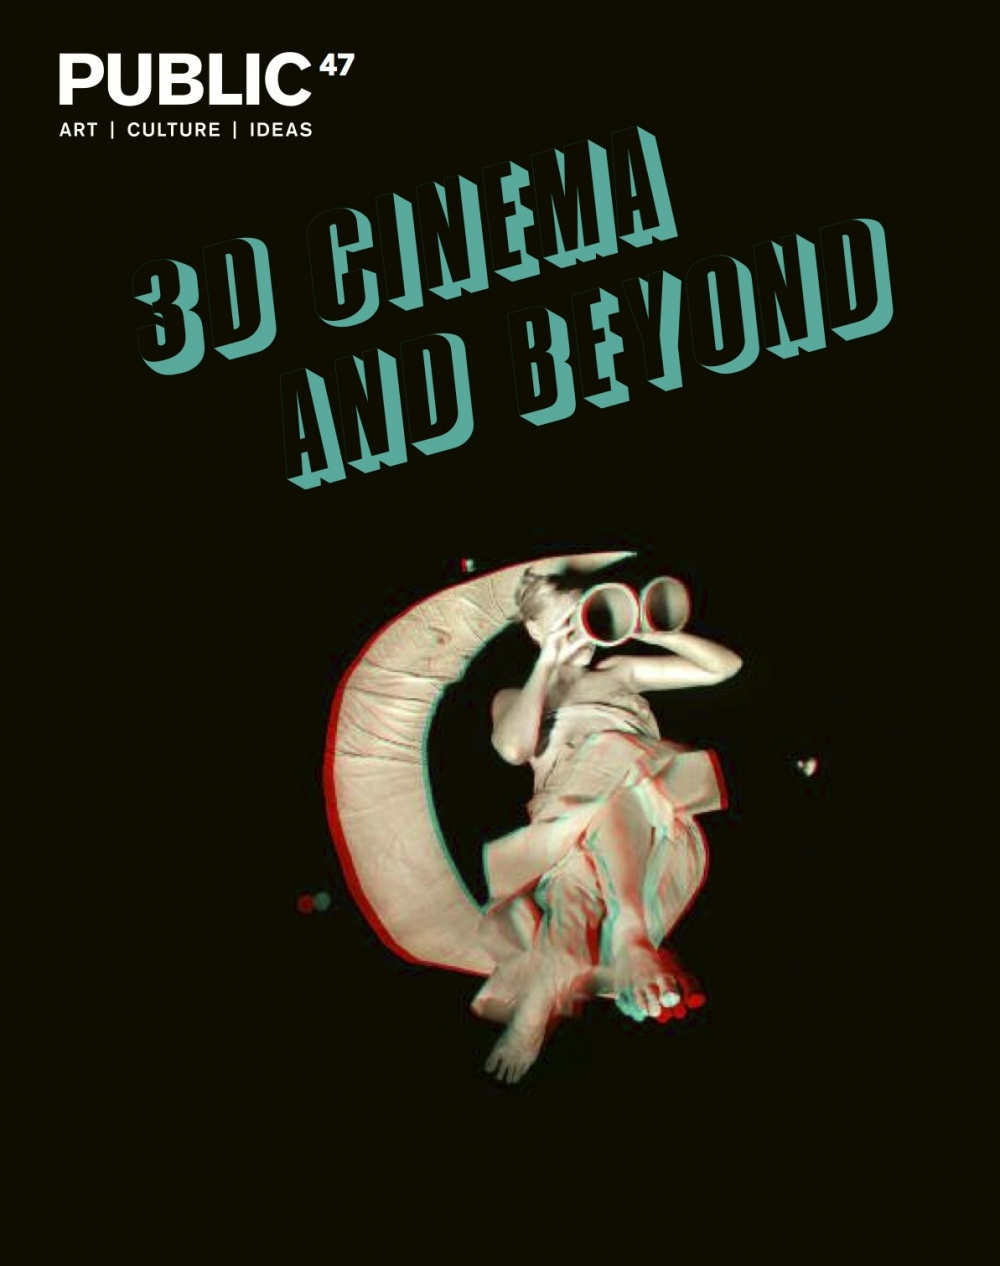 Public 47: 3D Cinema And Beyond